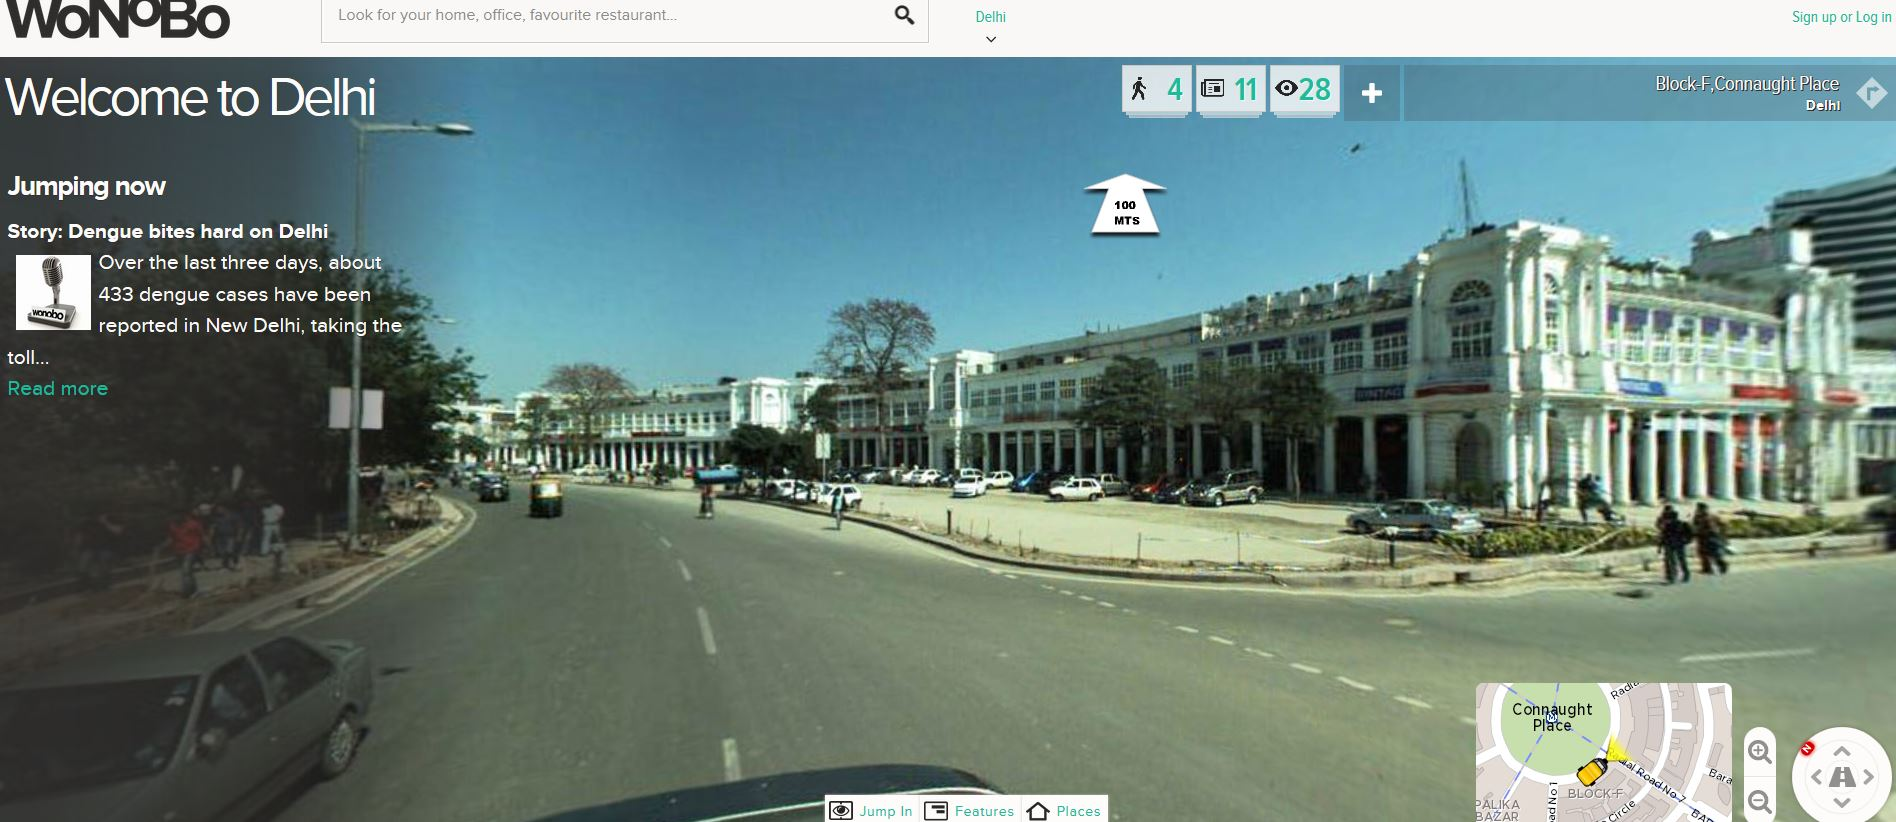 Street View Maps in India, a reality with Wonobo Maps